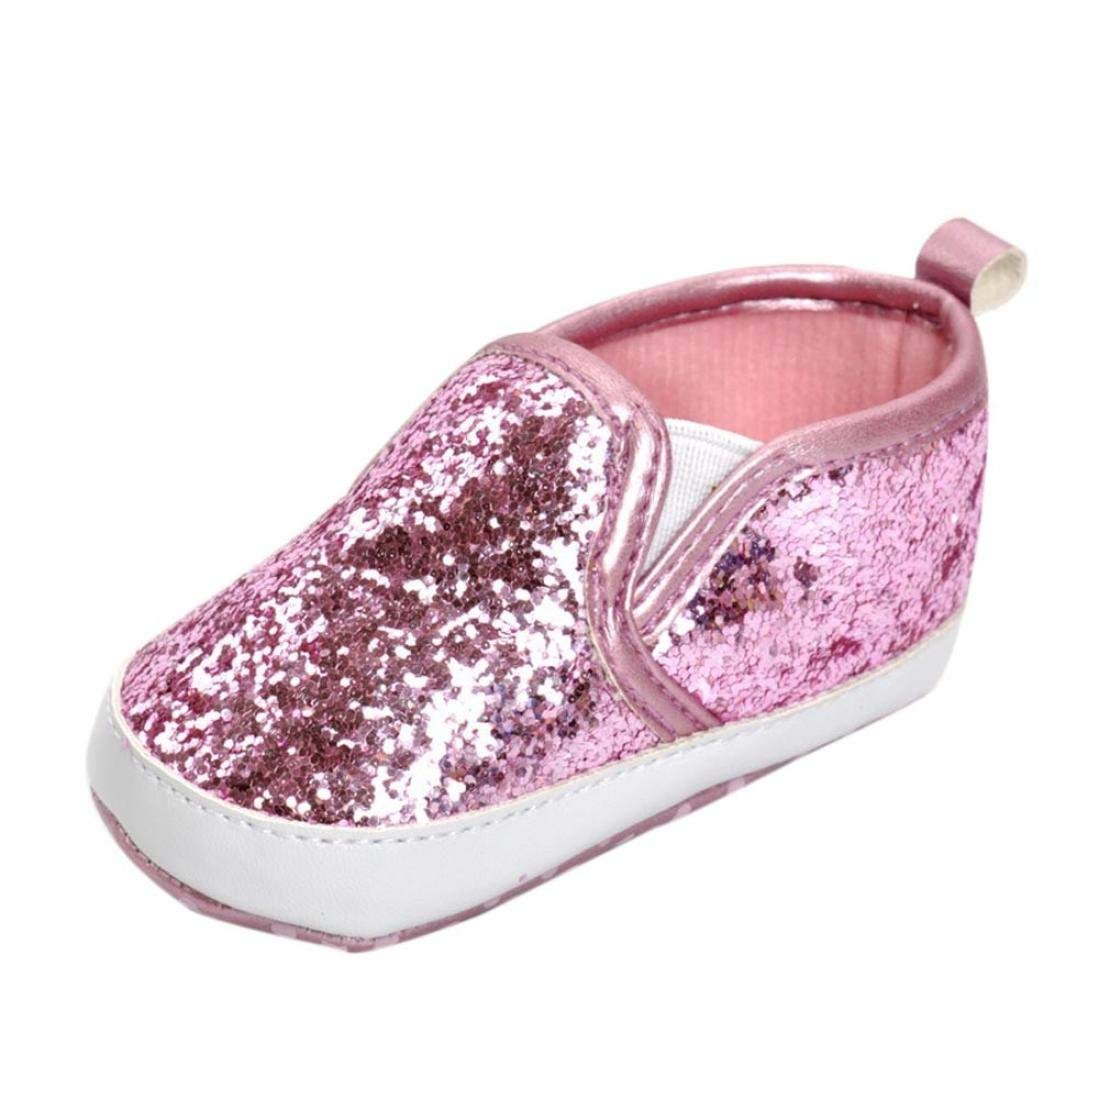 86efb13af96dd0 Get Quotations · Amiley Girls Boys Crib Shoes Soft Sole Anti-slip Baby  Sneakers glitter bling Sequins Shoes